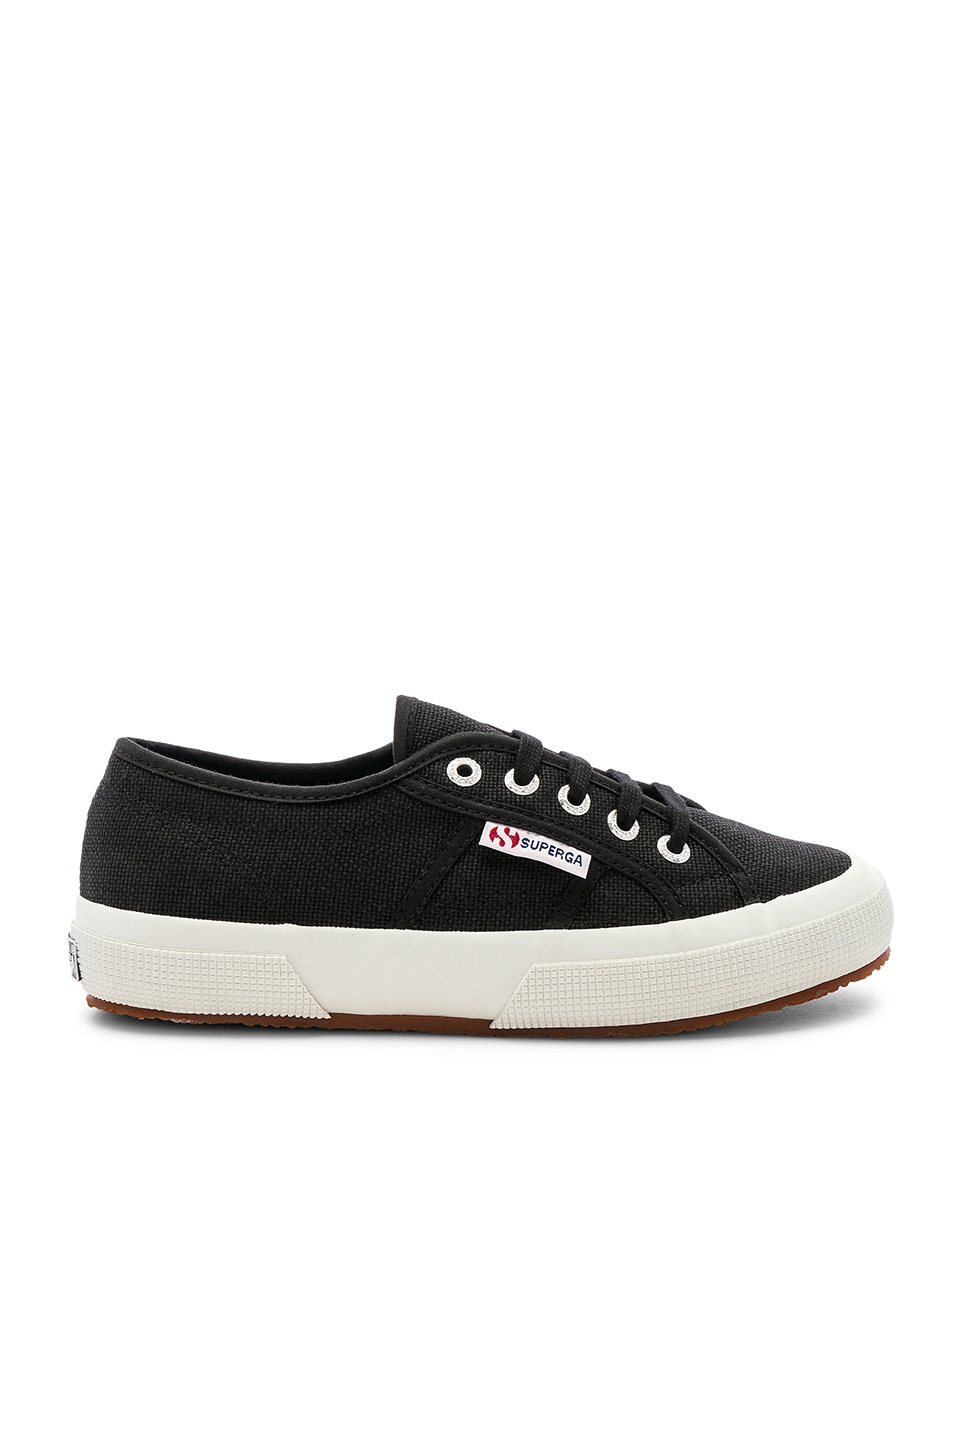 Superga 2750 COTW Sneaker in Black & White